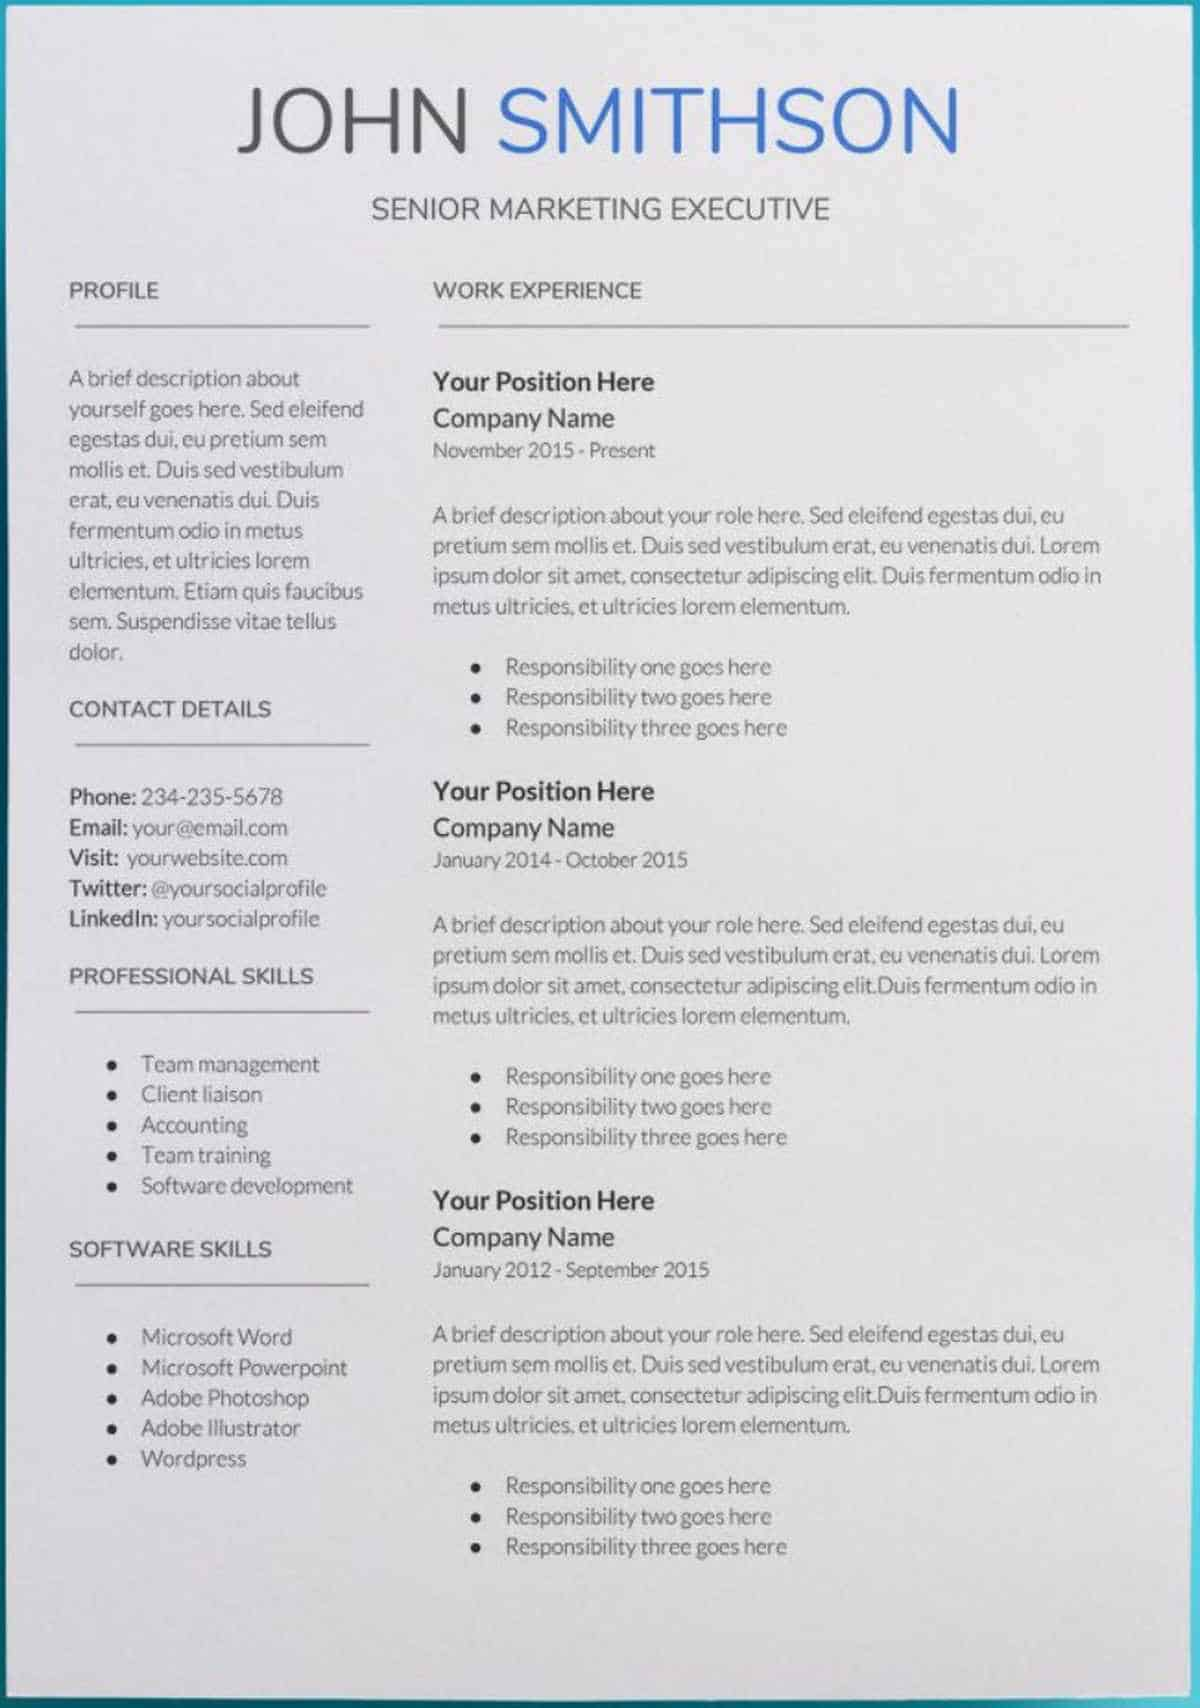 google docs resume templates downloadable pdfs for free saturn template windows graphic Resume Resume Templates For Google Docs Free